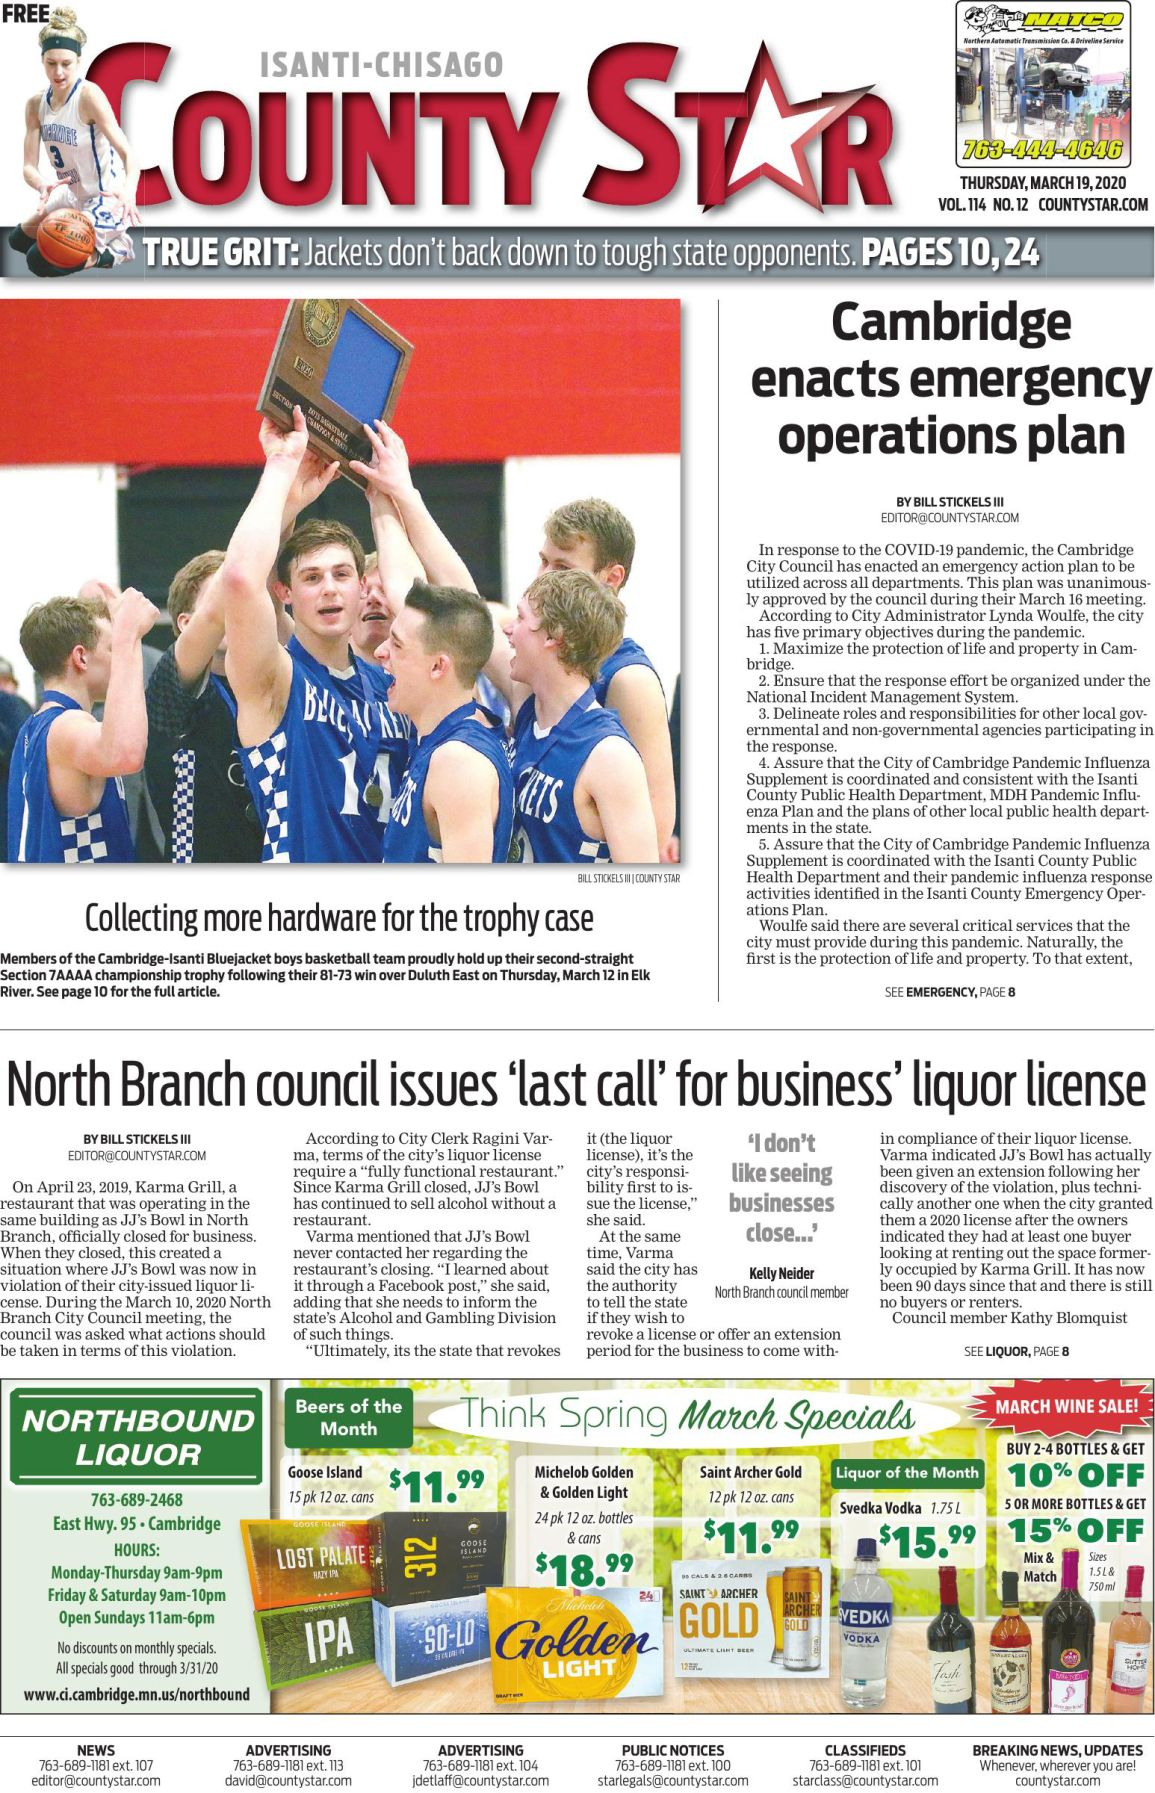 Isanti-Chisago County Star March 19, 2020 e-edition